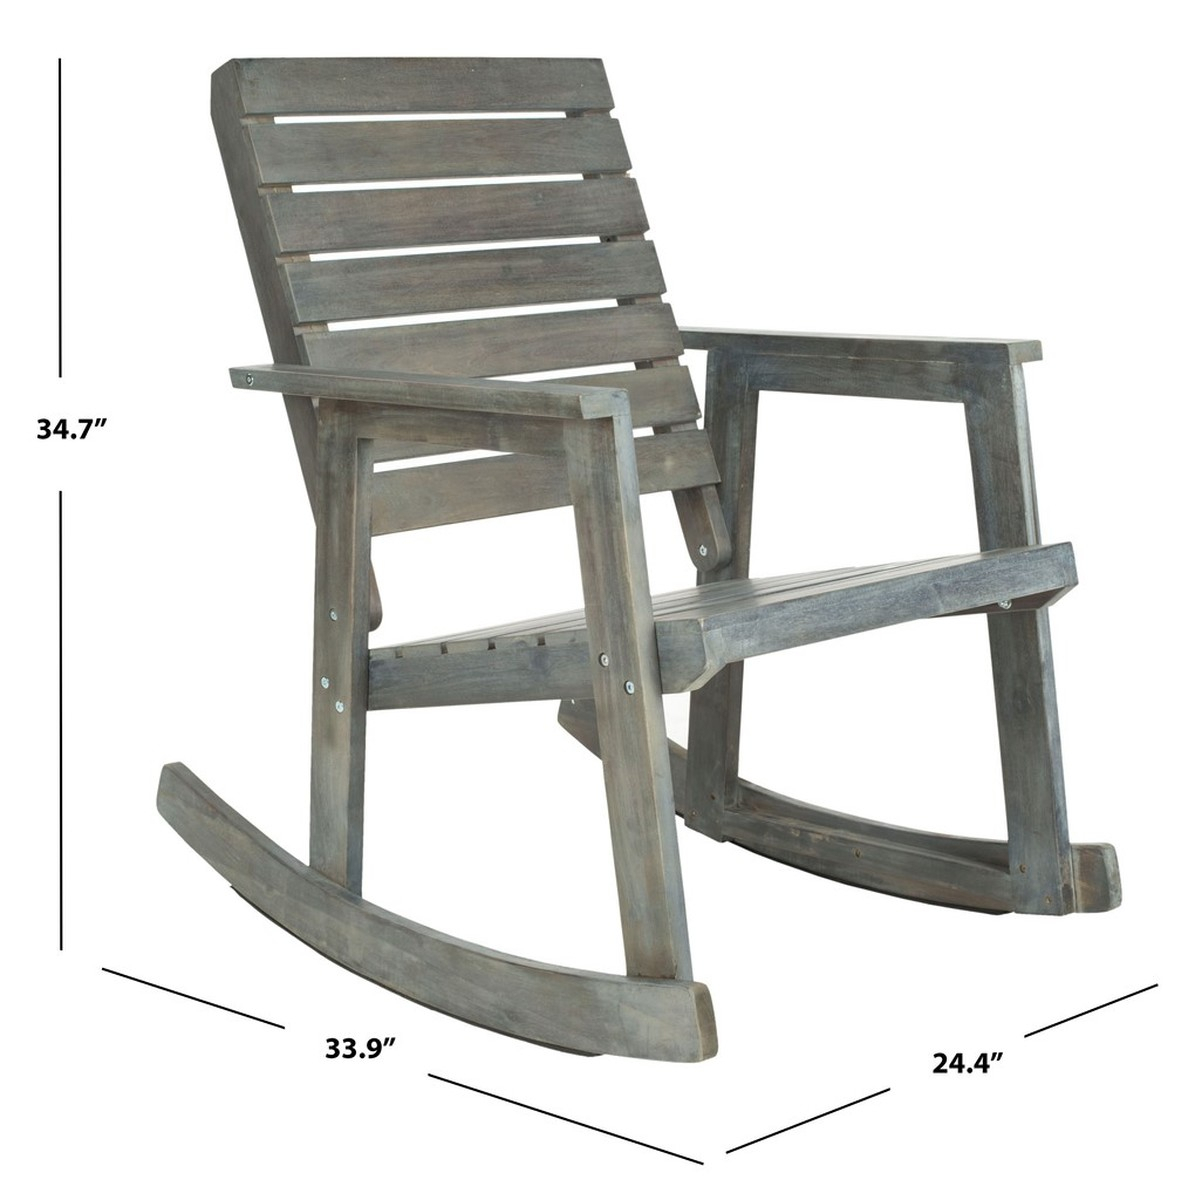 Fox6702A Outdoor Rocking Chairs, Rocking Chairs – Furniture With Regard To Traditional Indoor Acacia Wood Rocking Chairs With Cushions (#11 of 20)